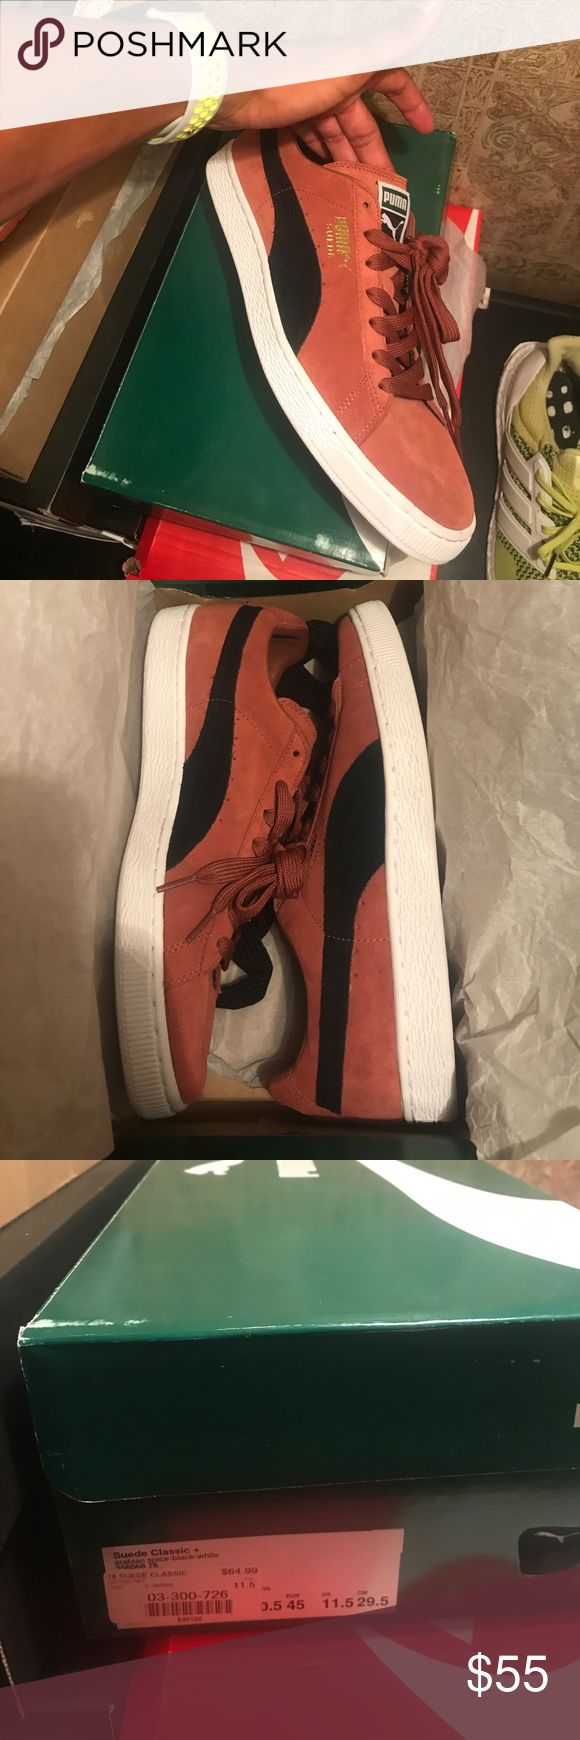 Puma suede classics Brand new size 11.5 puma suede classics with the box. Never been worn before! Puma Shoes Sneakers